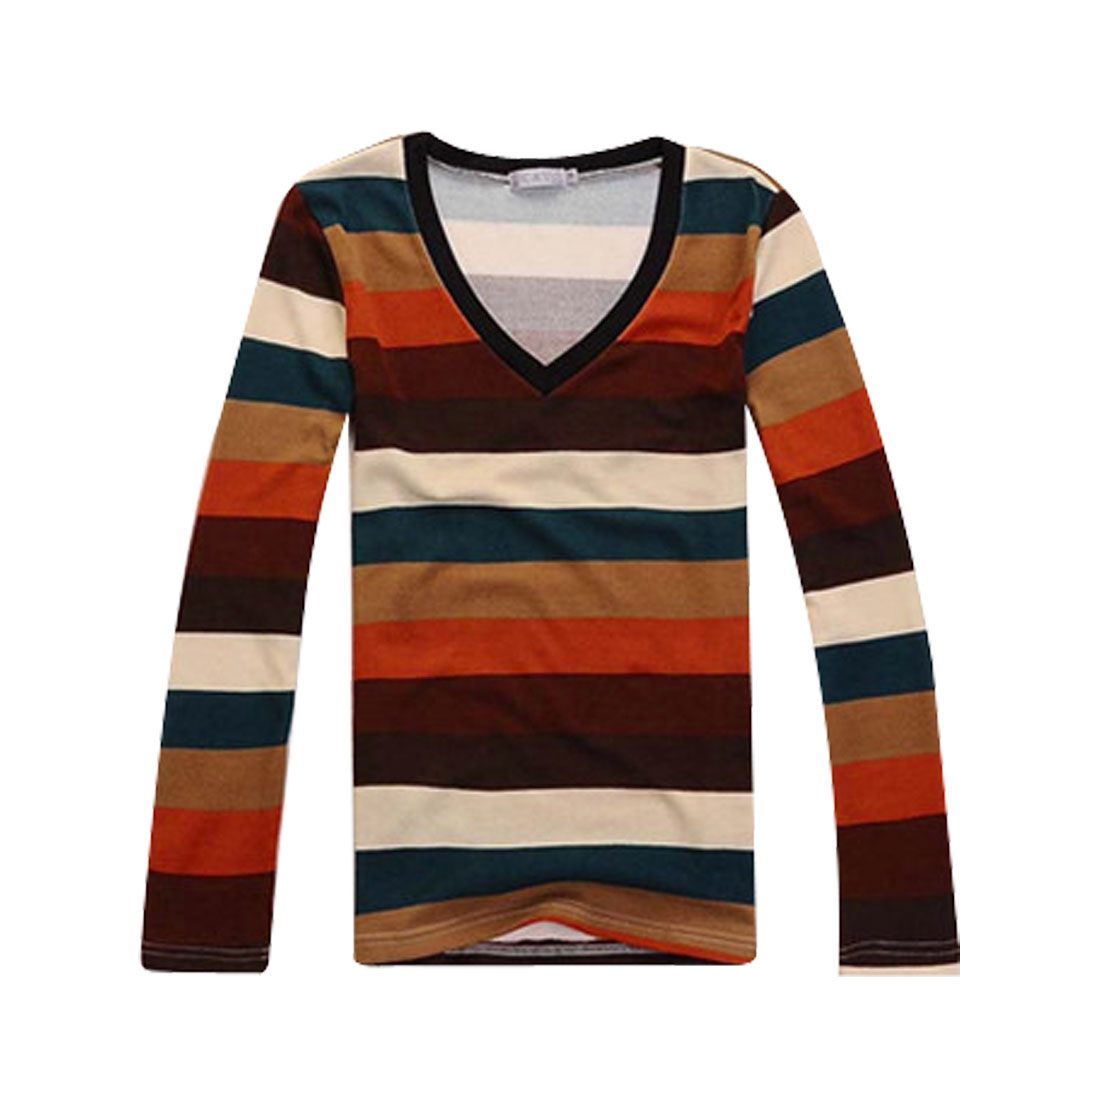 Mens Five Tones Stripes Long Sleeve V Neck Pullover Stretchy Shirt Top S